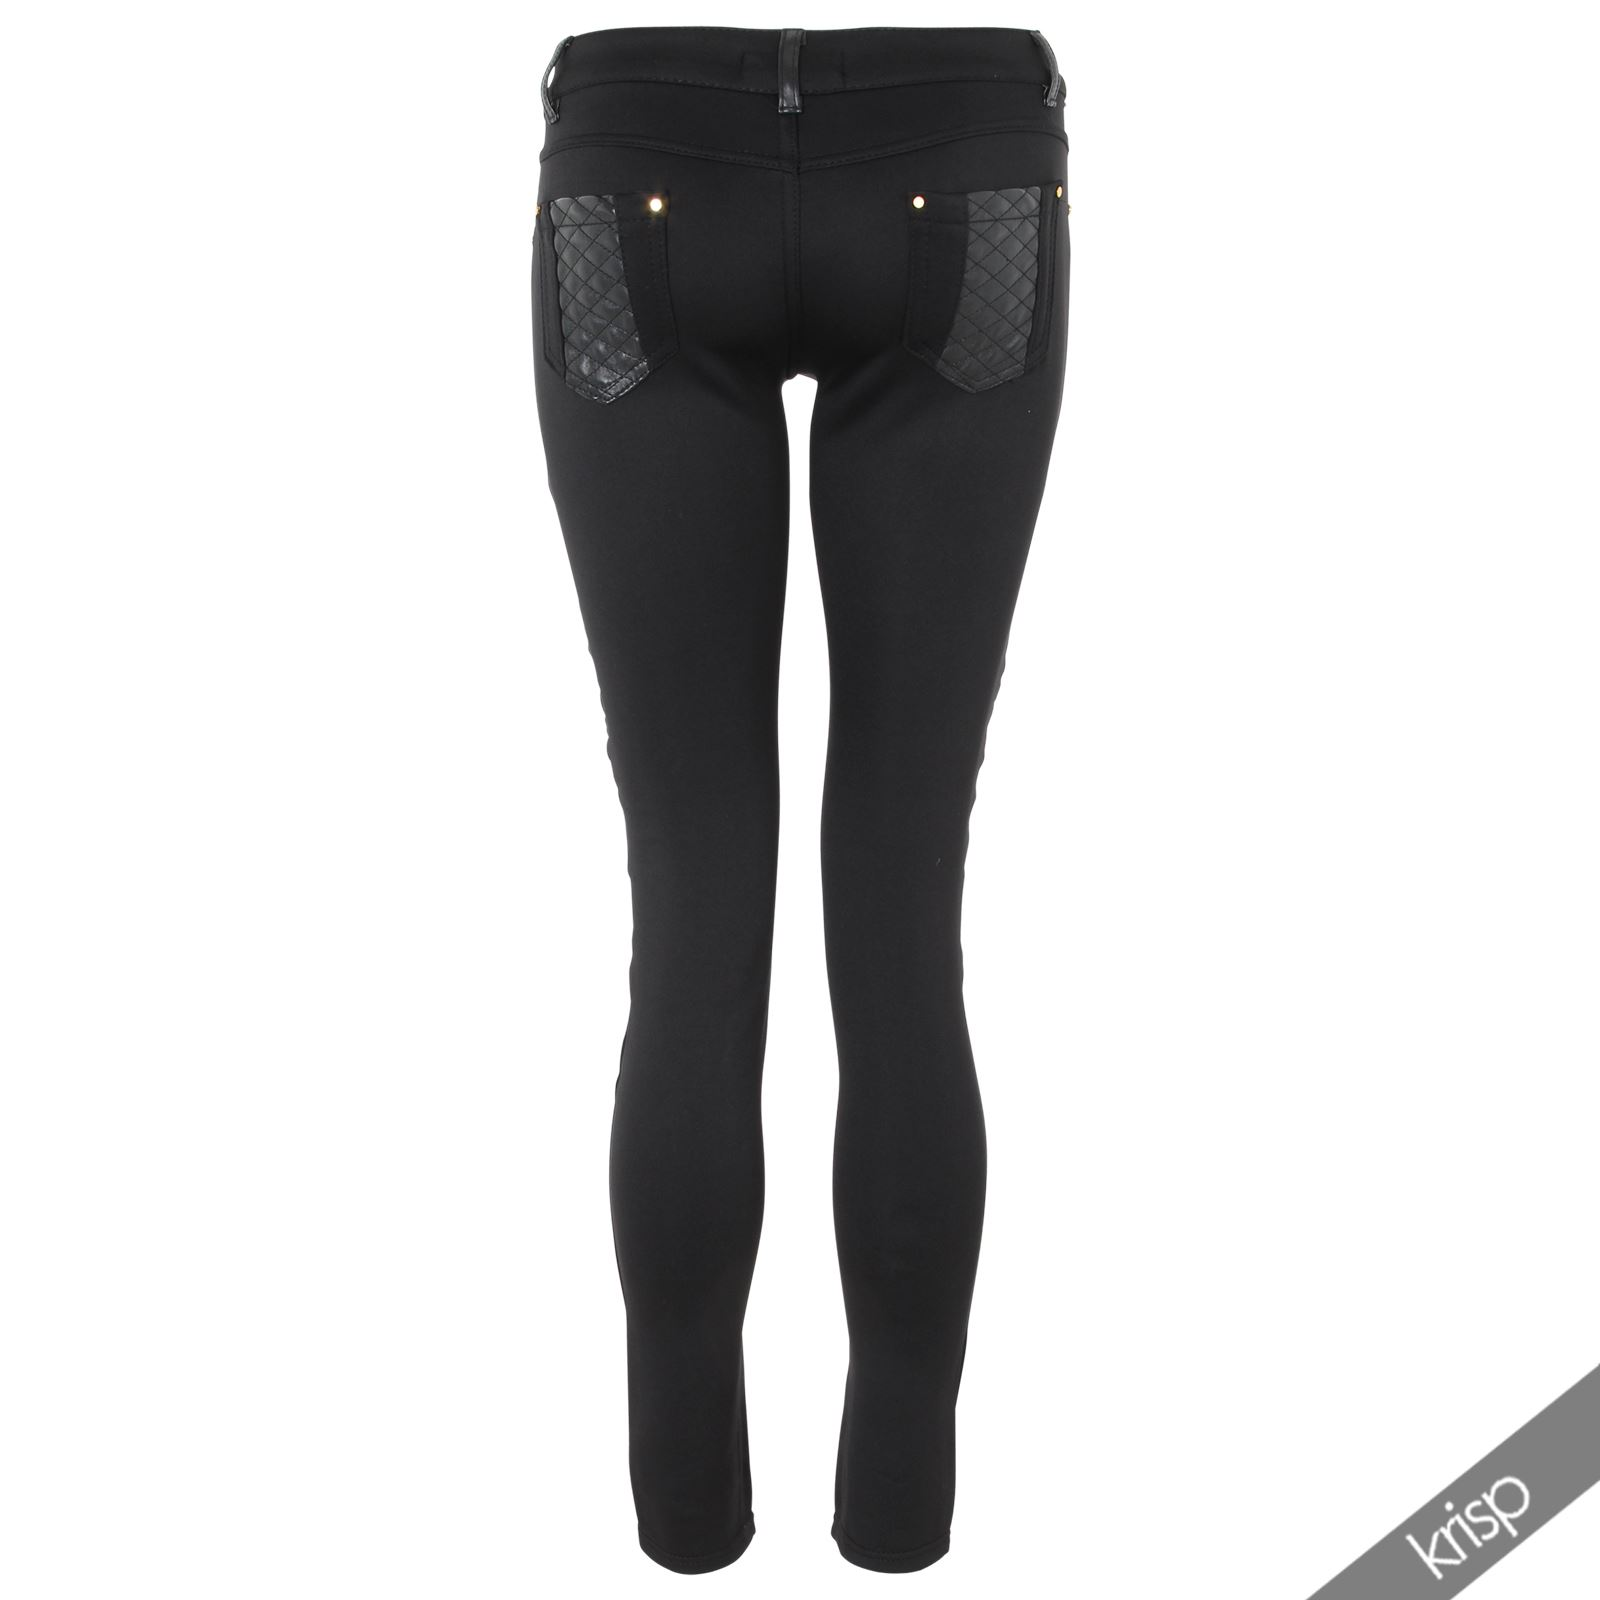 Excellent  Womens Leather Look Trousers High Waist Skinny Legging Jegging Pants